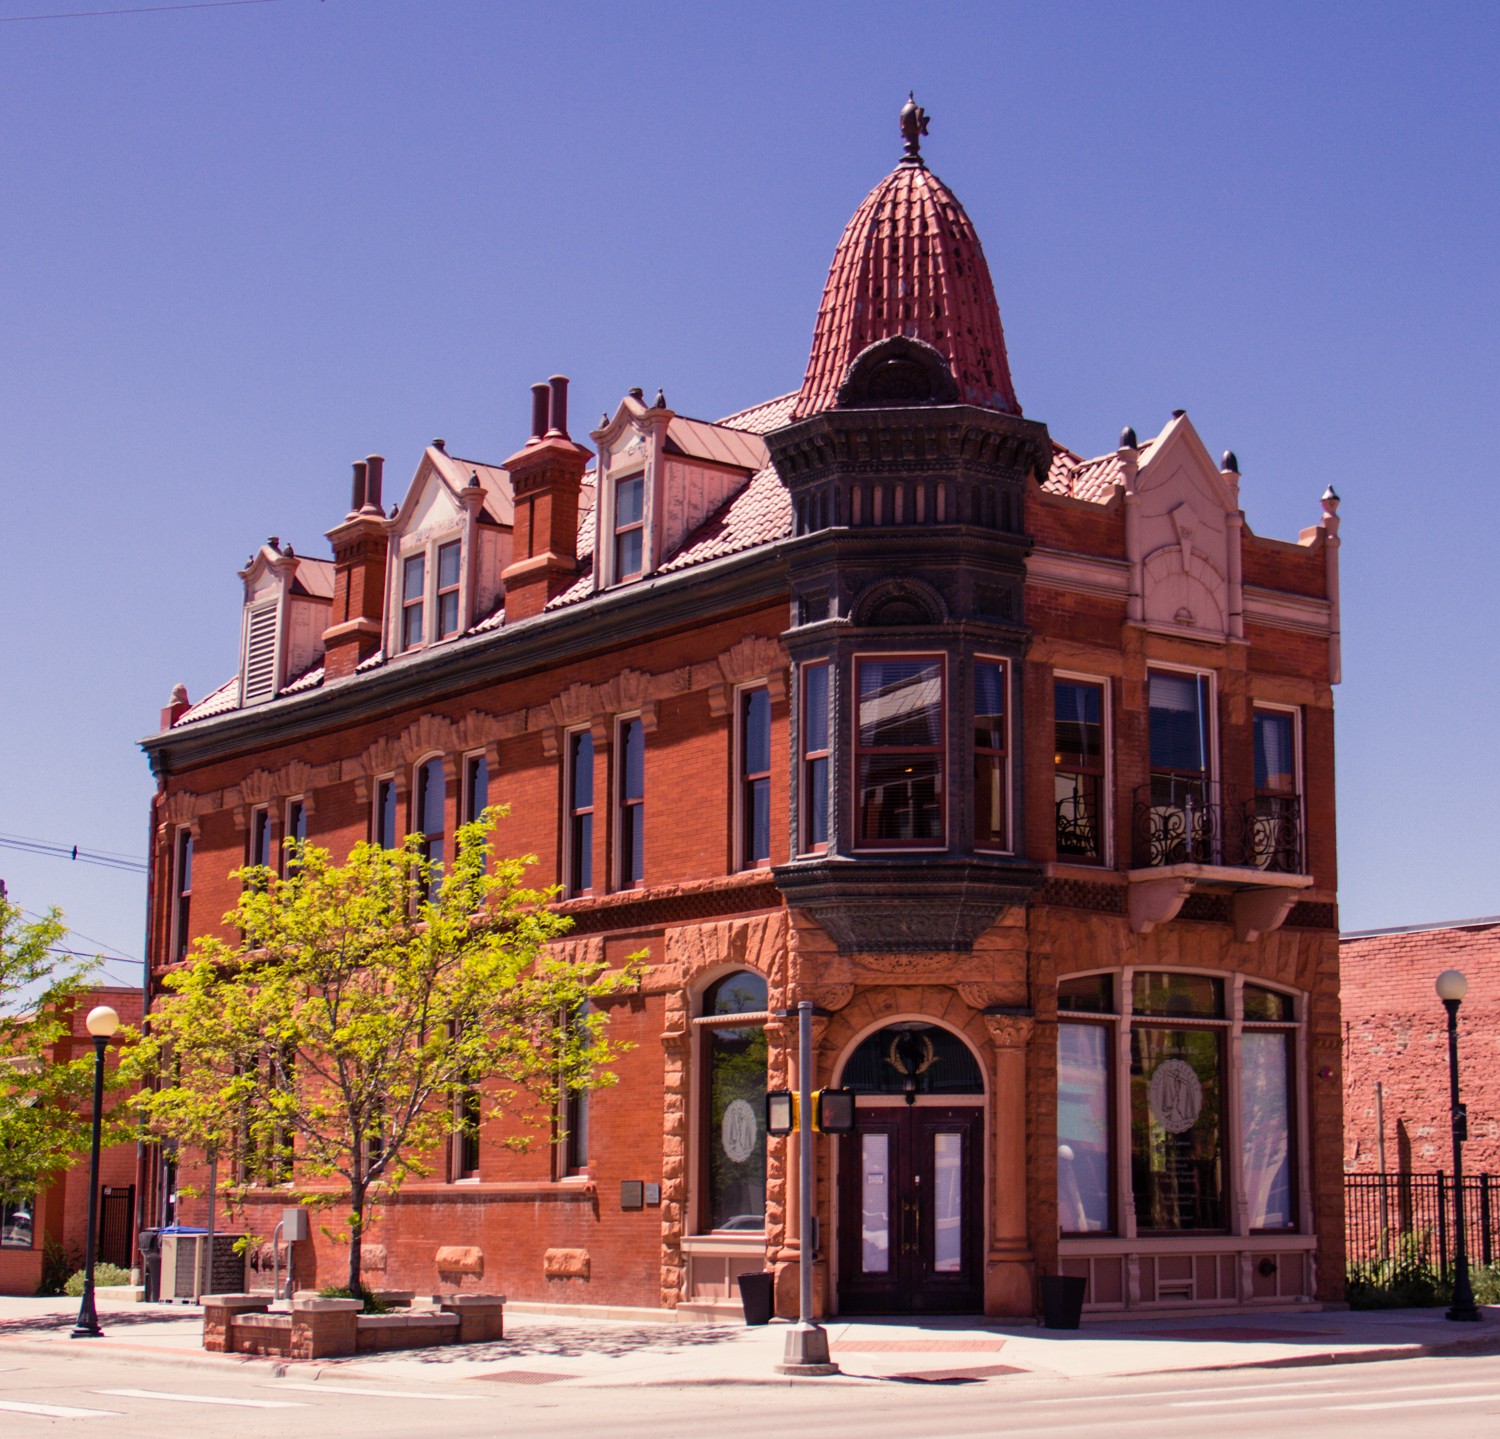 Located in the historic Tivoli Building in Cheyenne, WY